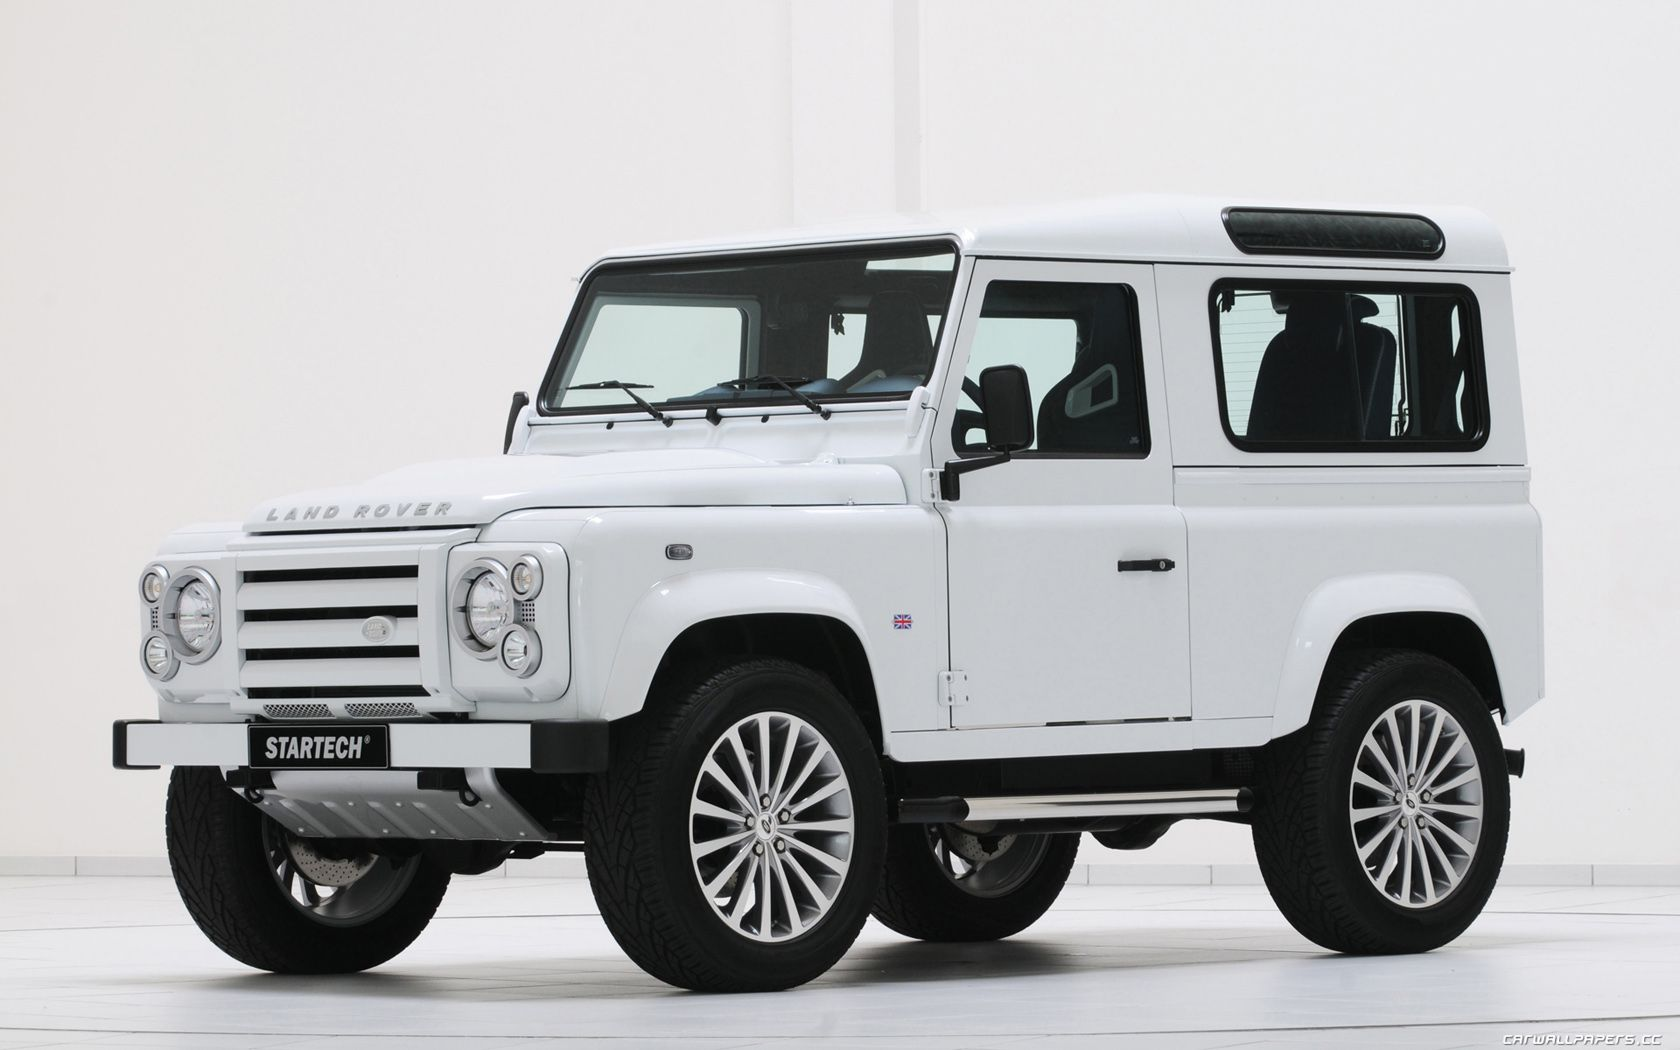 2011 land rover dc100 concept side 2 1280x960 wallpaper - Startech Land Rover Defender 90 Yachting Edition 2011